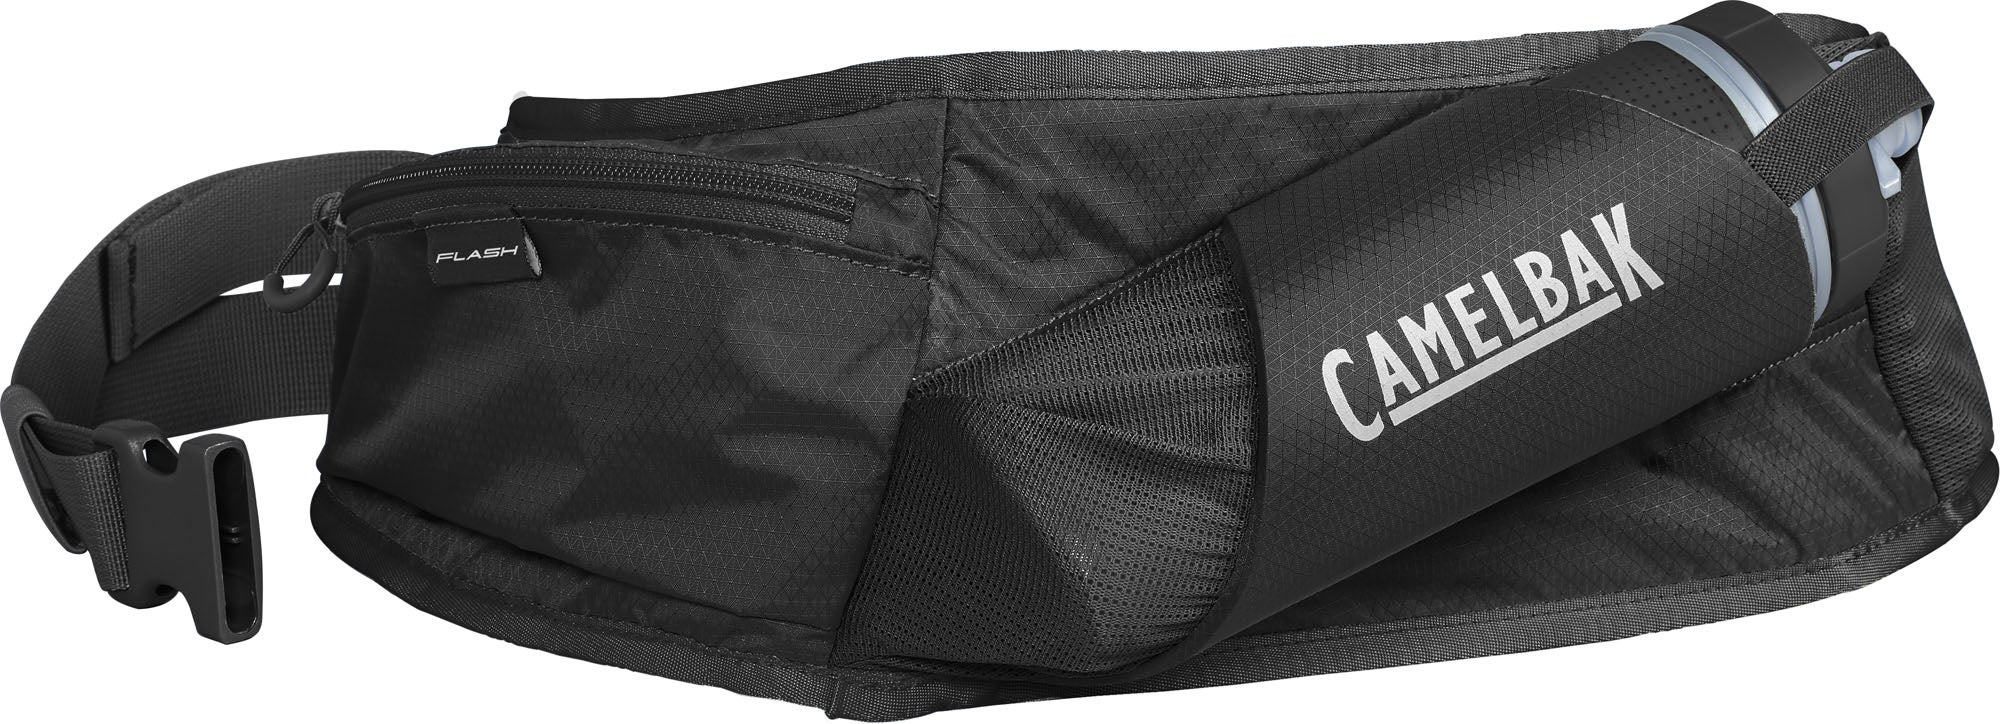 waist pack to carry water on run